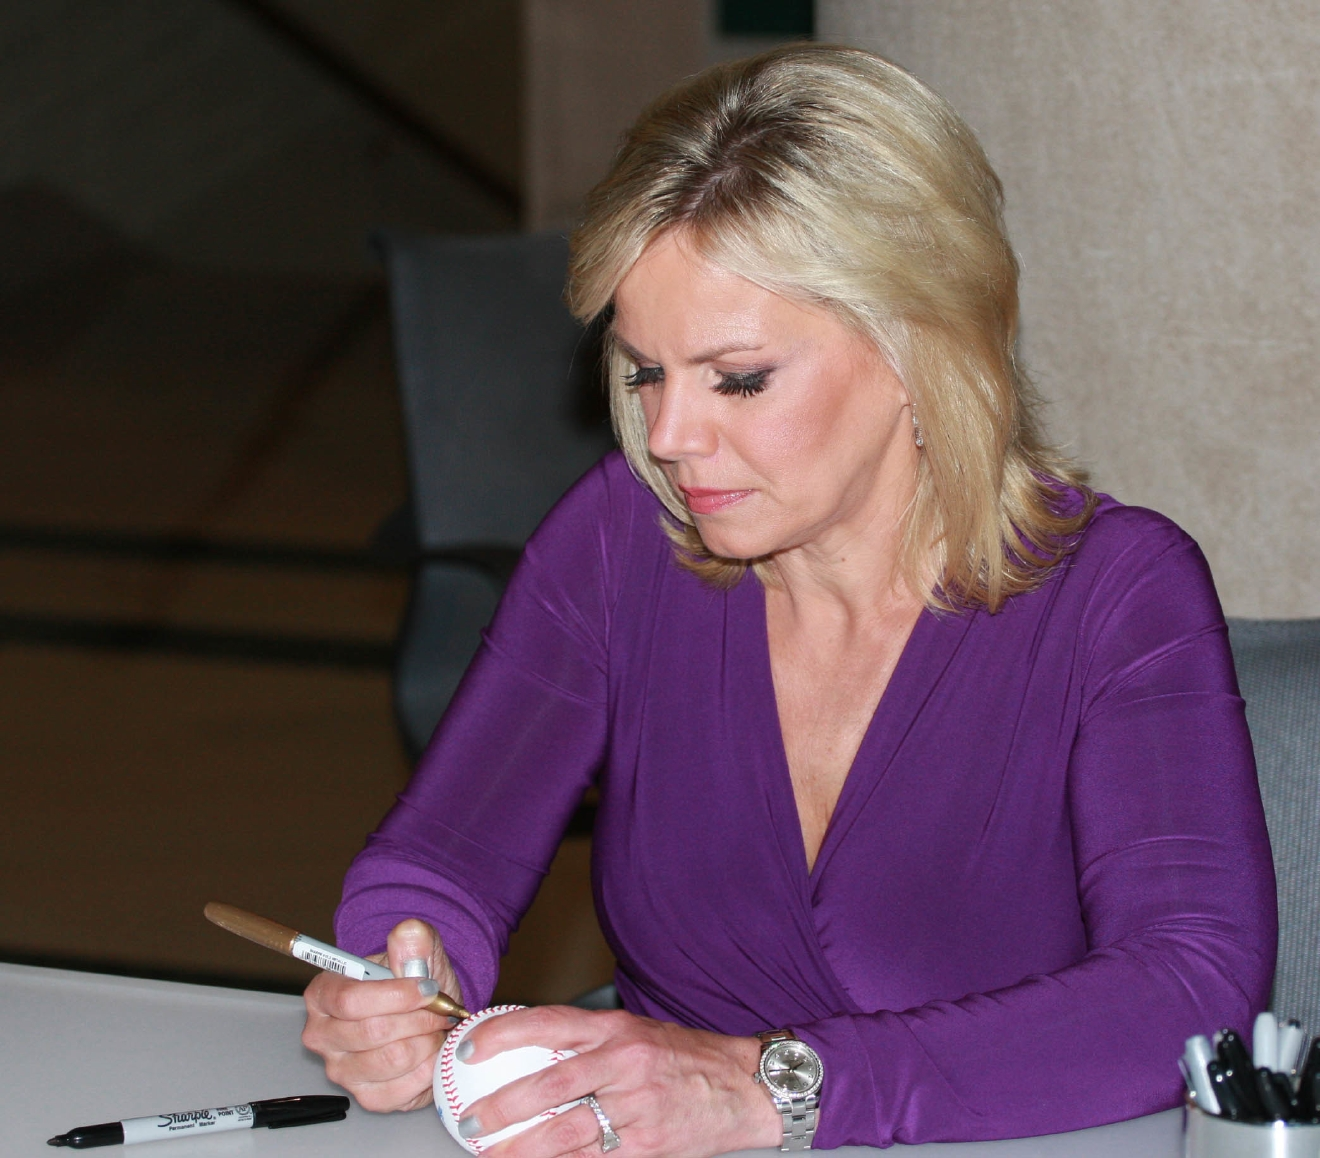 Fox News anchor Gretchen Carlson signs copies of her book 'Getting Real' at the Free Library of Philadelphia                                    Featuring: Gretchen Carlson                  Where: Philadelphia, United States                  When: 23 Jun 2015                  Credit: W Wade / WENN